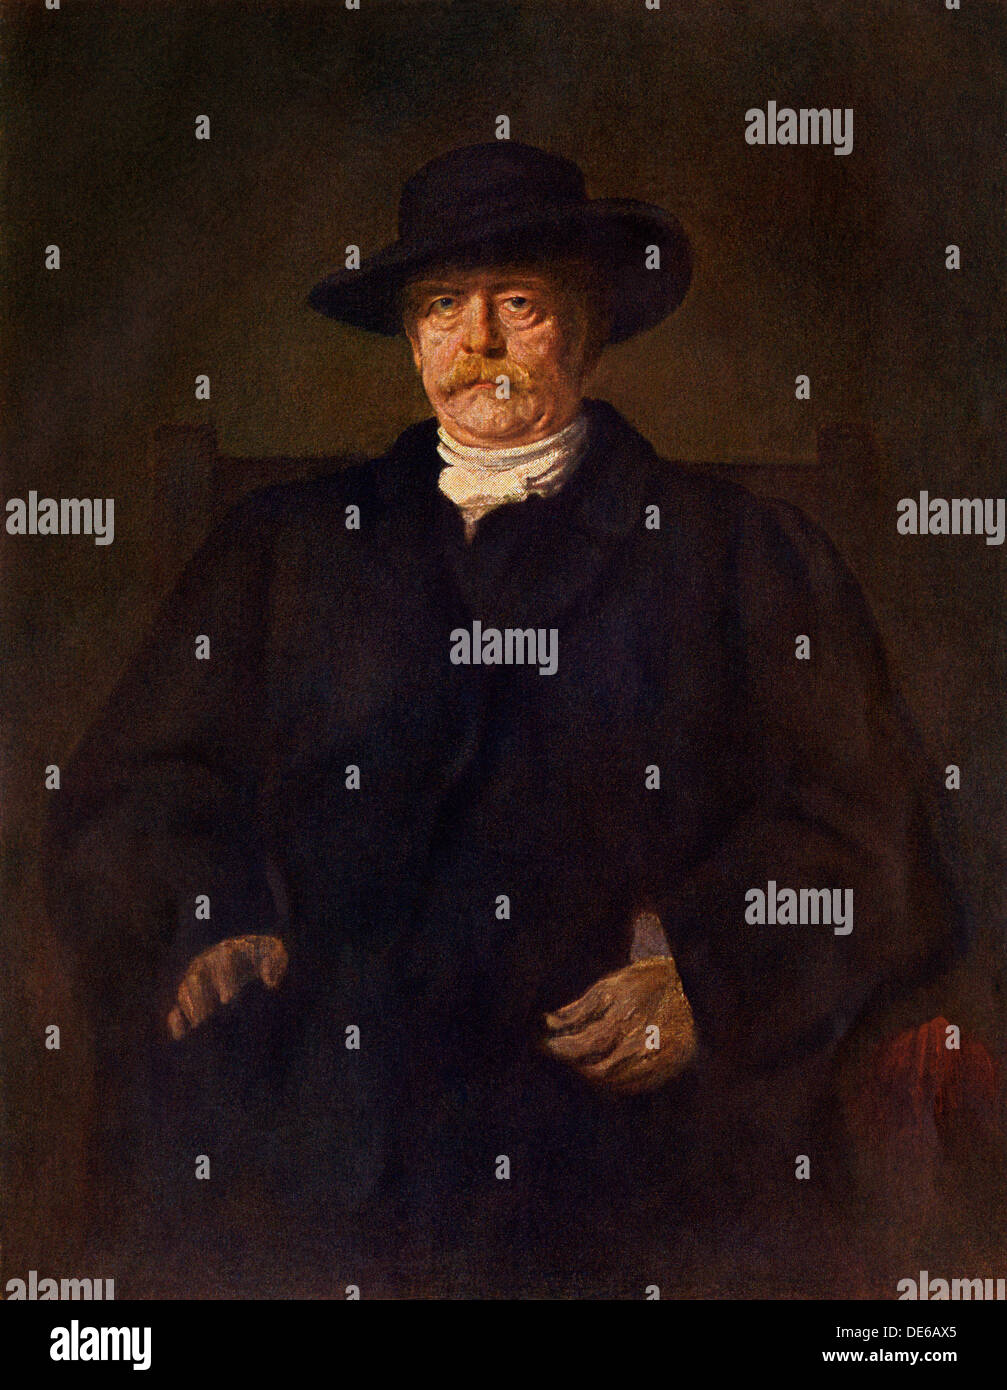 Prussian statesman Otto von Bismarck. Color lithograph of a painting by Franz von Lenbach - Stock Image